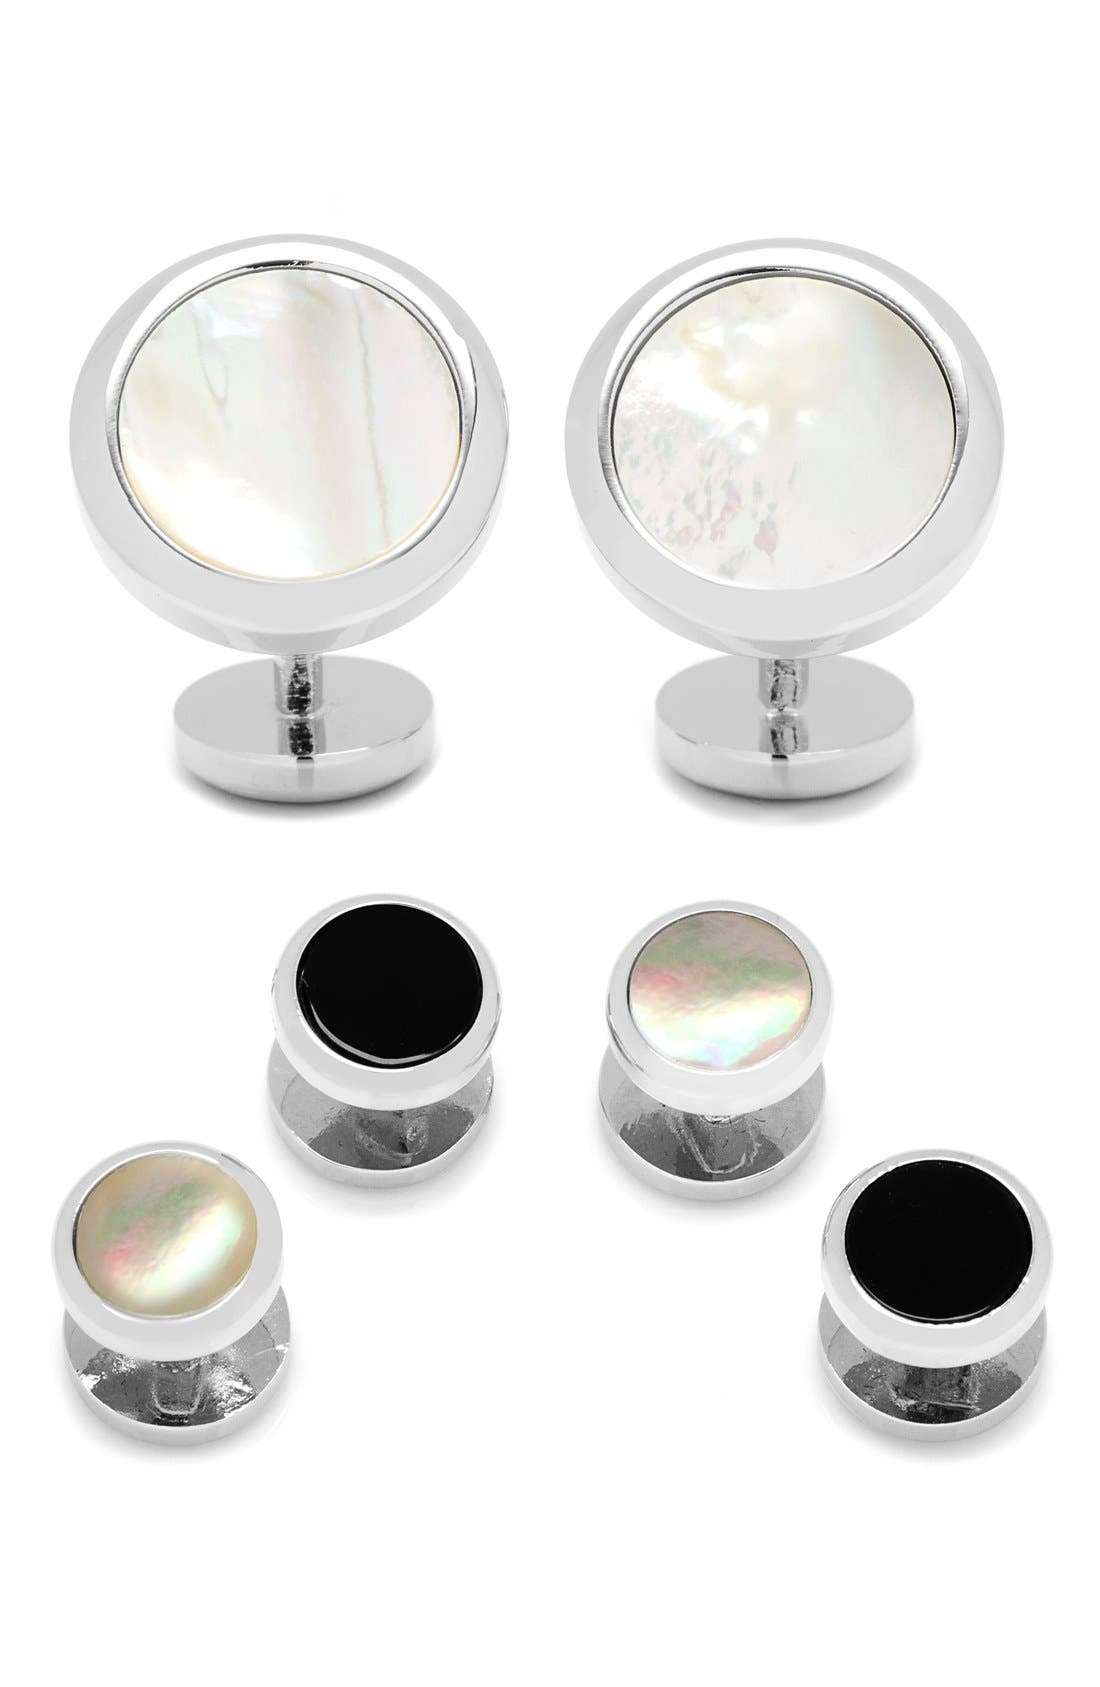 Ox and Bull Trading Co. Mother-of-Pearl Cuff Links & Shirt Stud Set